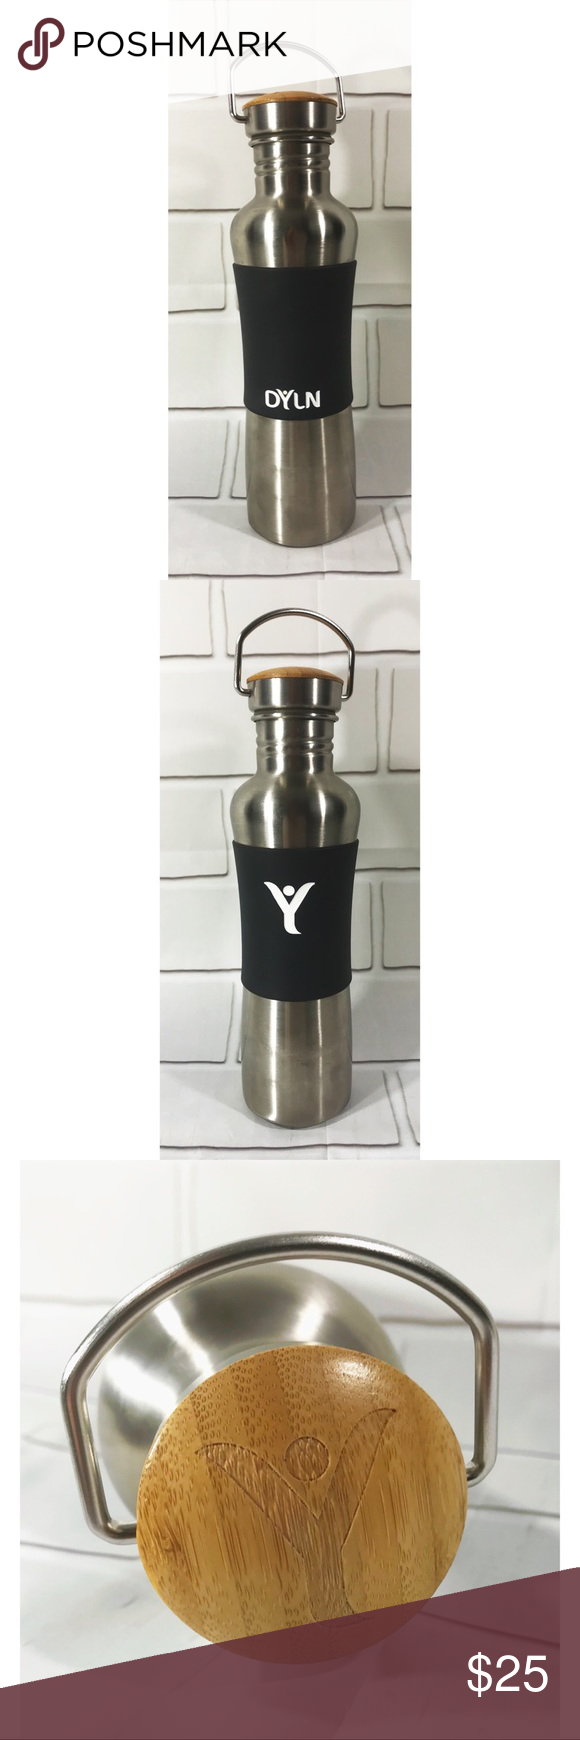 9282f4a323 DYLN Water Bottle Antioxidant VitaBead Diffuser | 316 stainless ...